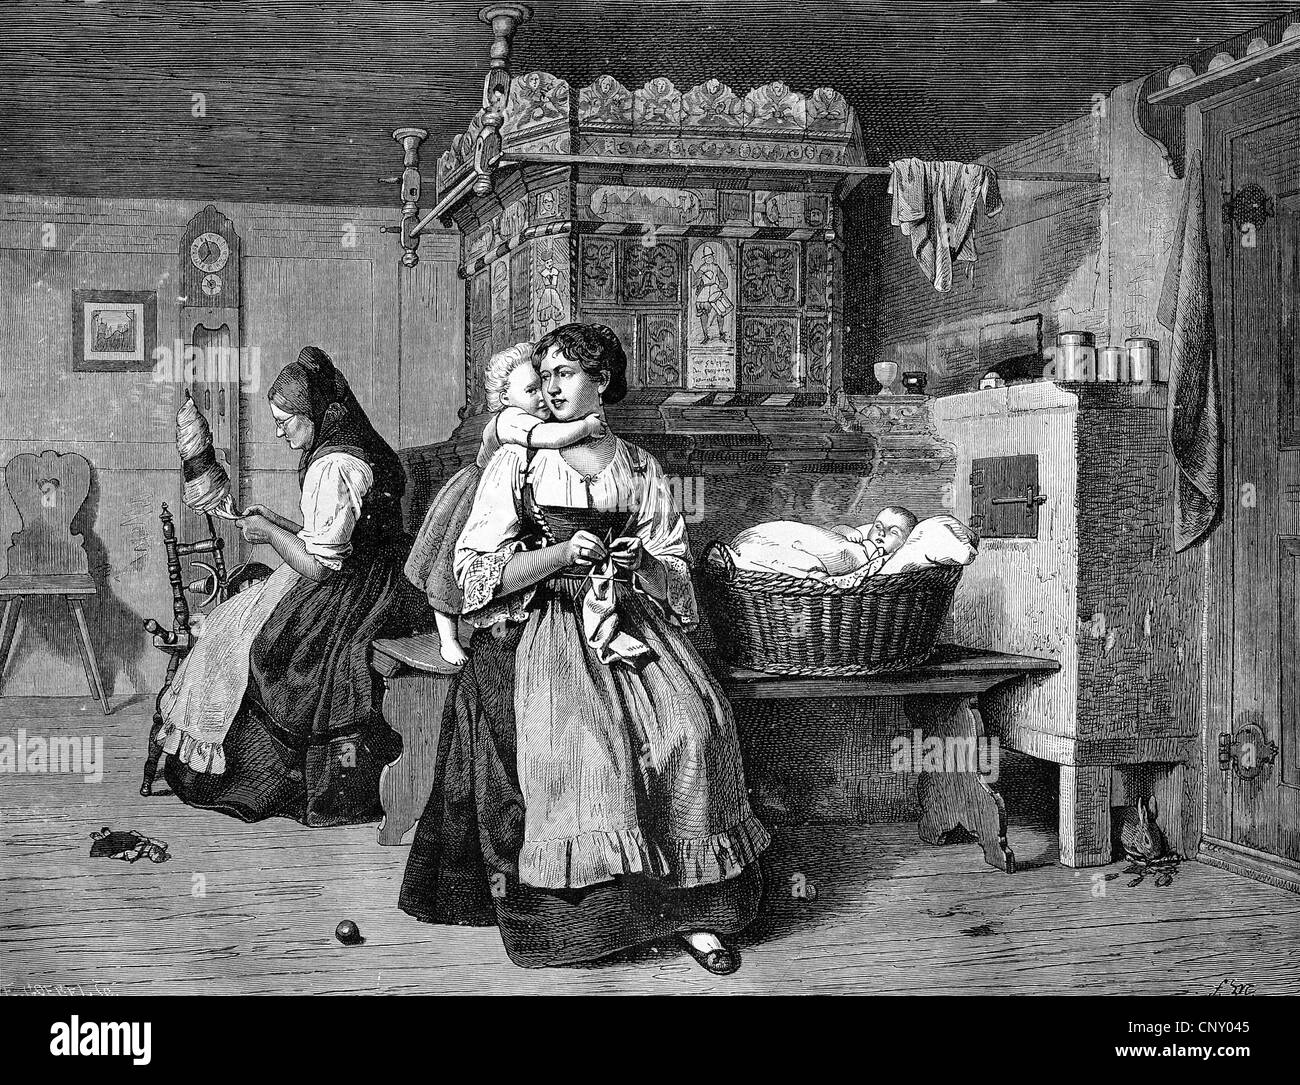 Sunday afternoon in the parlour in Flanders, Belgium, historical woodcut, circa 1888 - Stock Image